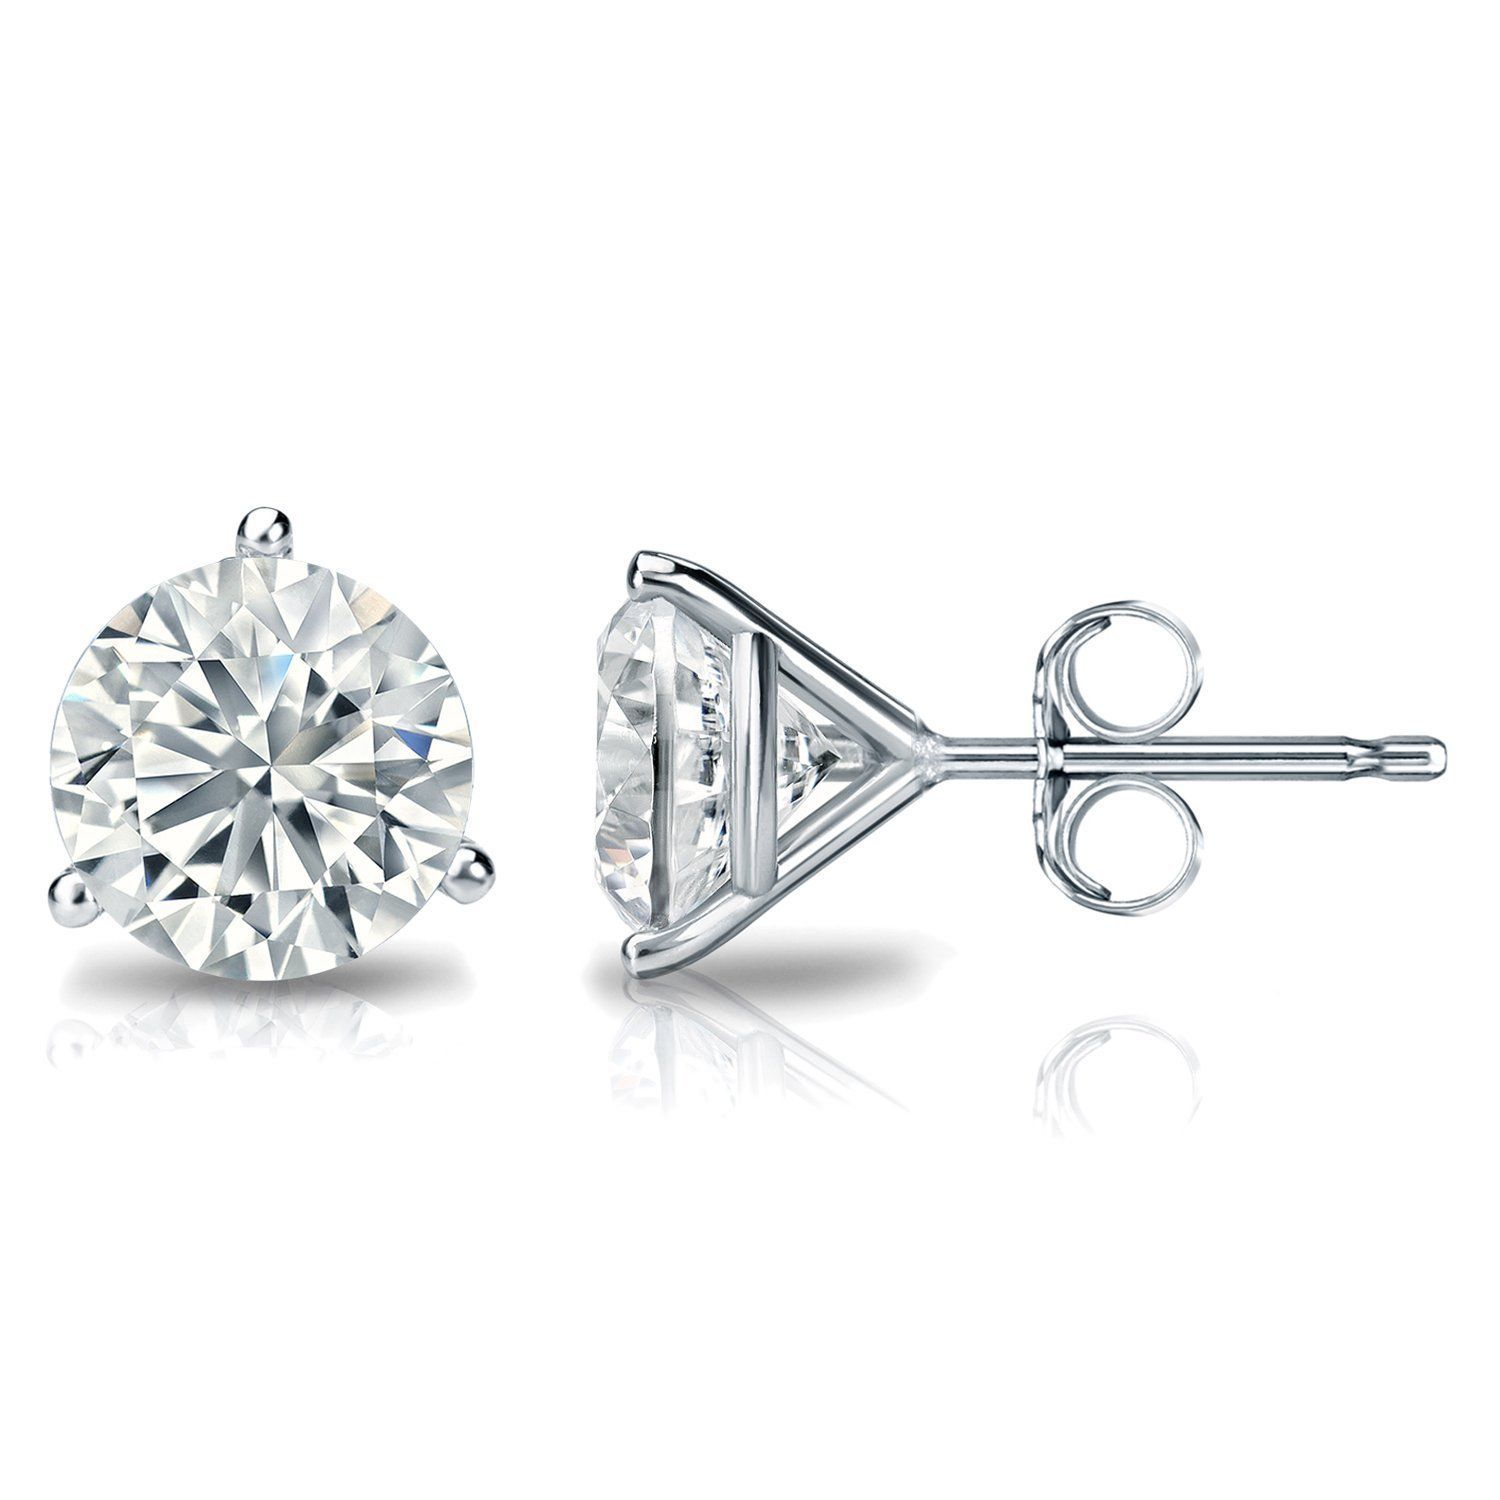 1.25CT Round Solid 18K White Gold Brilliant Cut Martini PushBack Stud Earrings